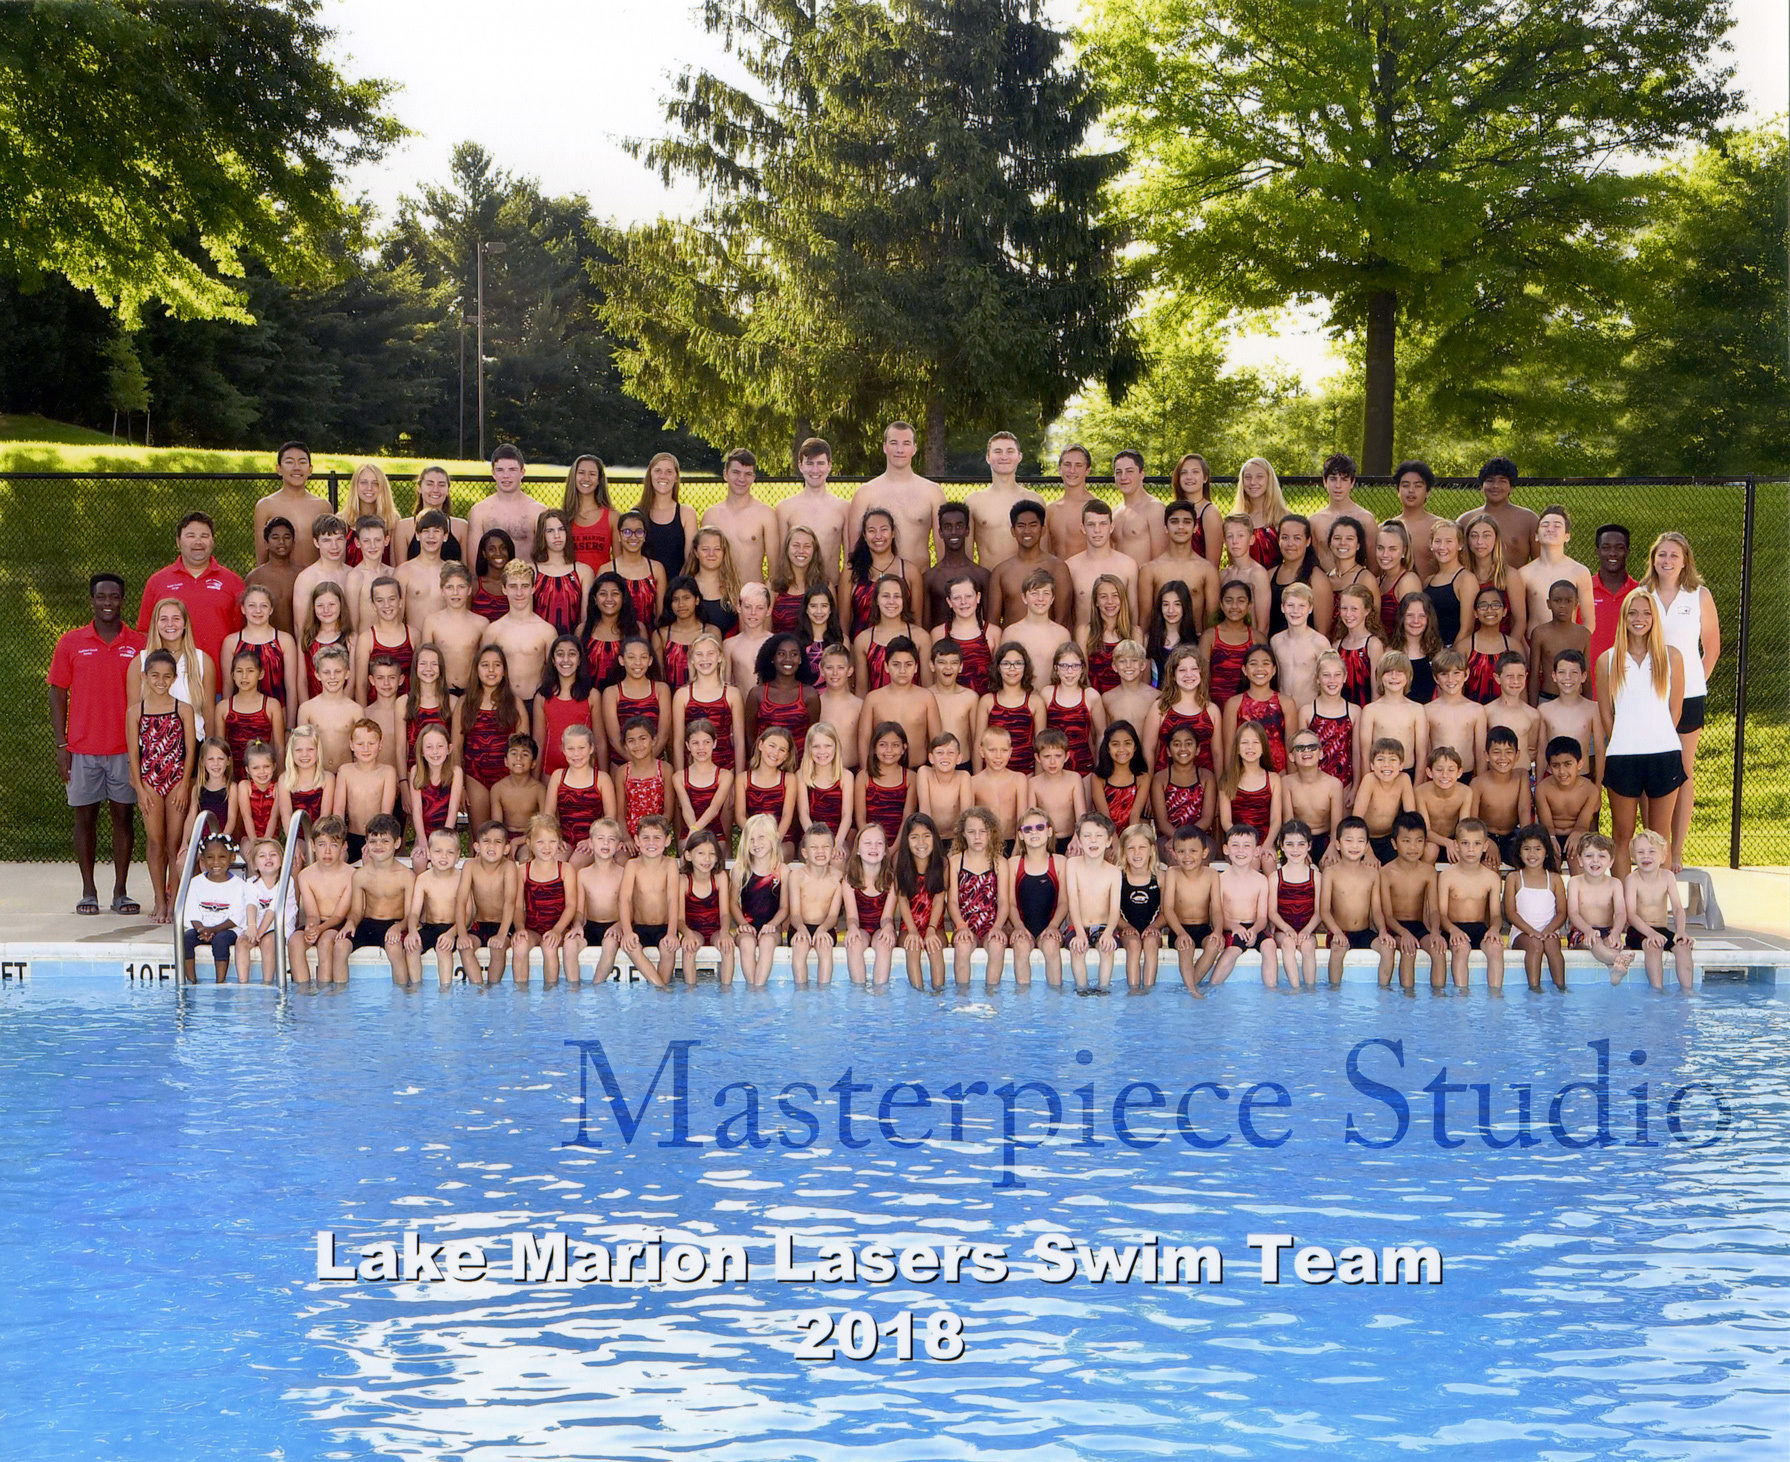 Lake Marion Lasers 2018 Swim Team